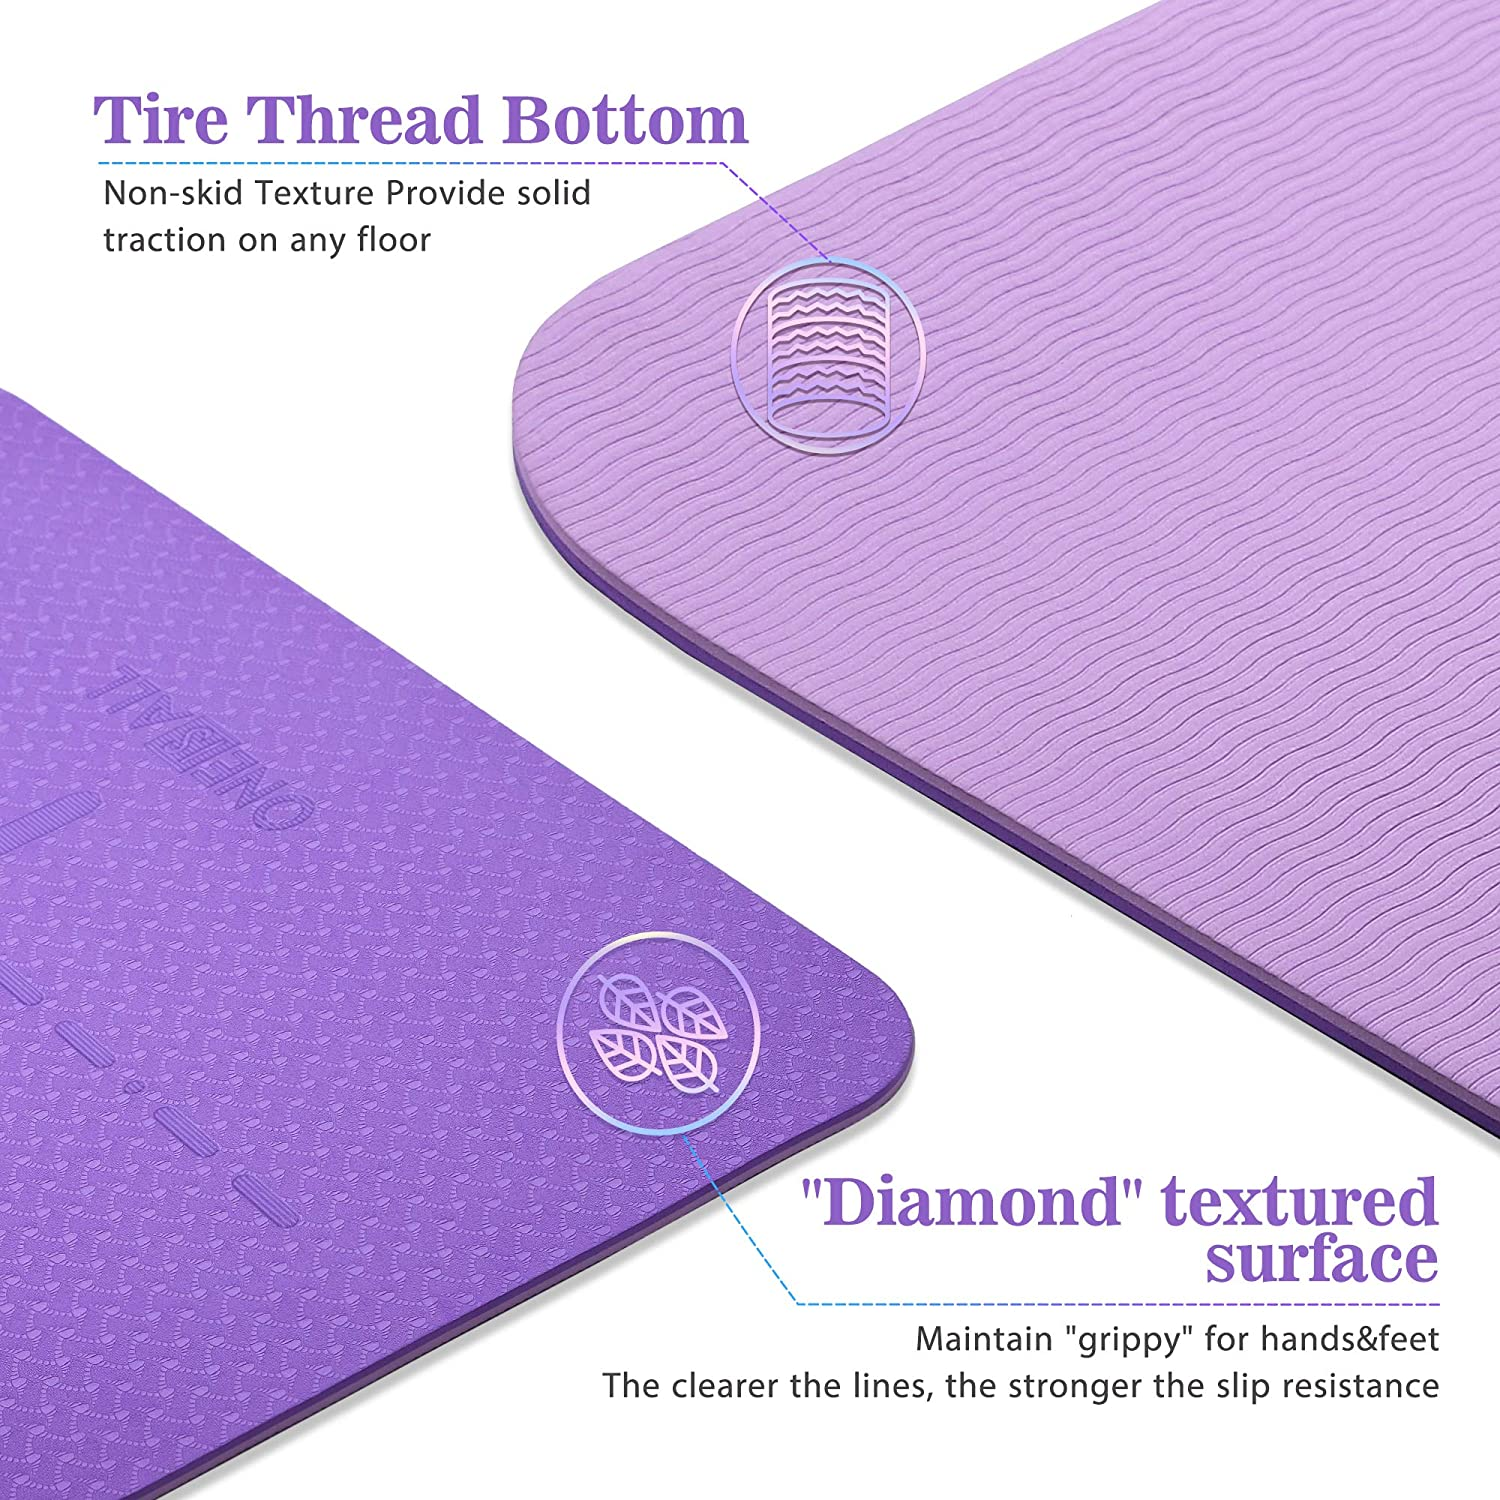 1//4inch Fitness Hot Yoga Exercise Mat Pilates Mat TPE Travel Yoga Mat with Carrying Strap /& Bag for Yoga//Pilates//Home Gym//Floor Exercise Thick Nonslip Yoga Mat with Alignment Lines Yoga Mats